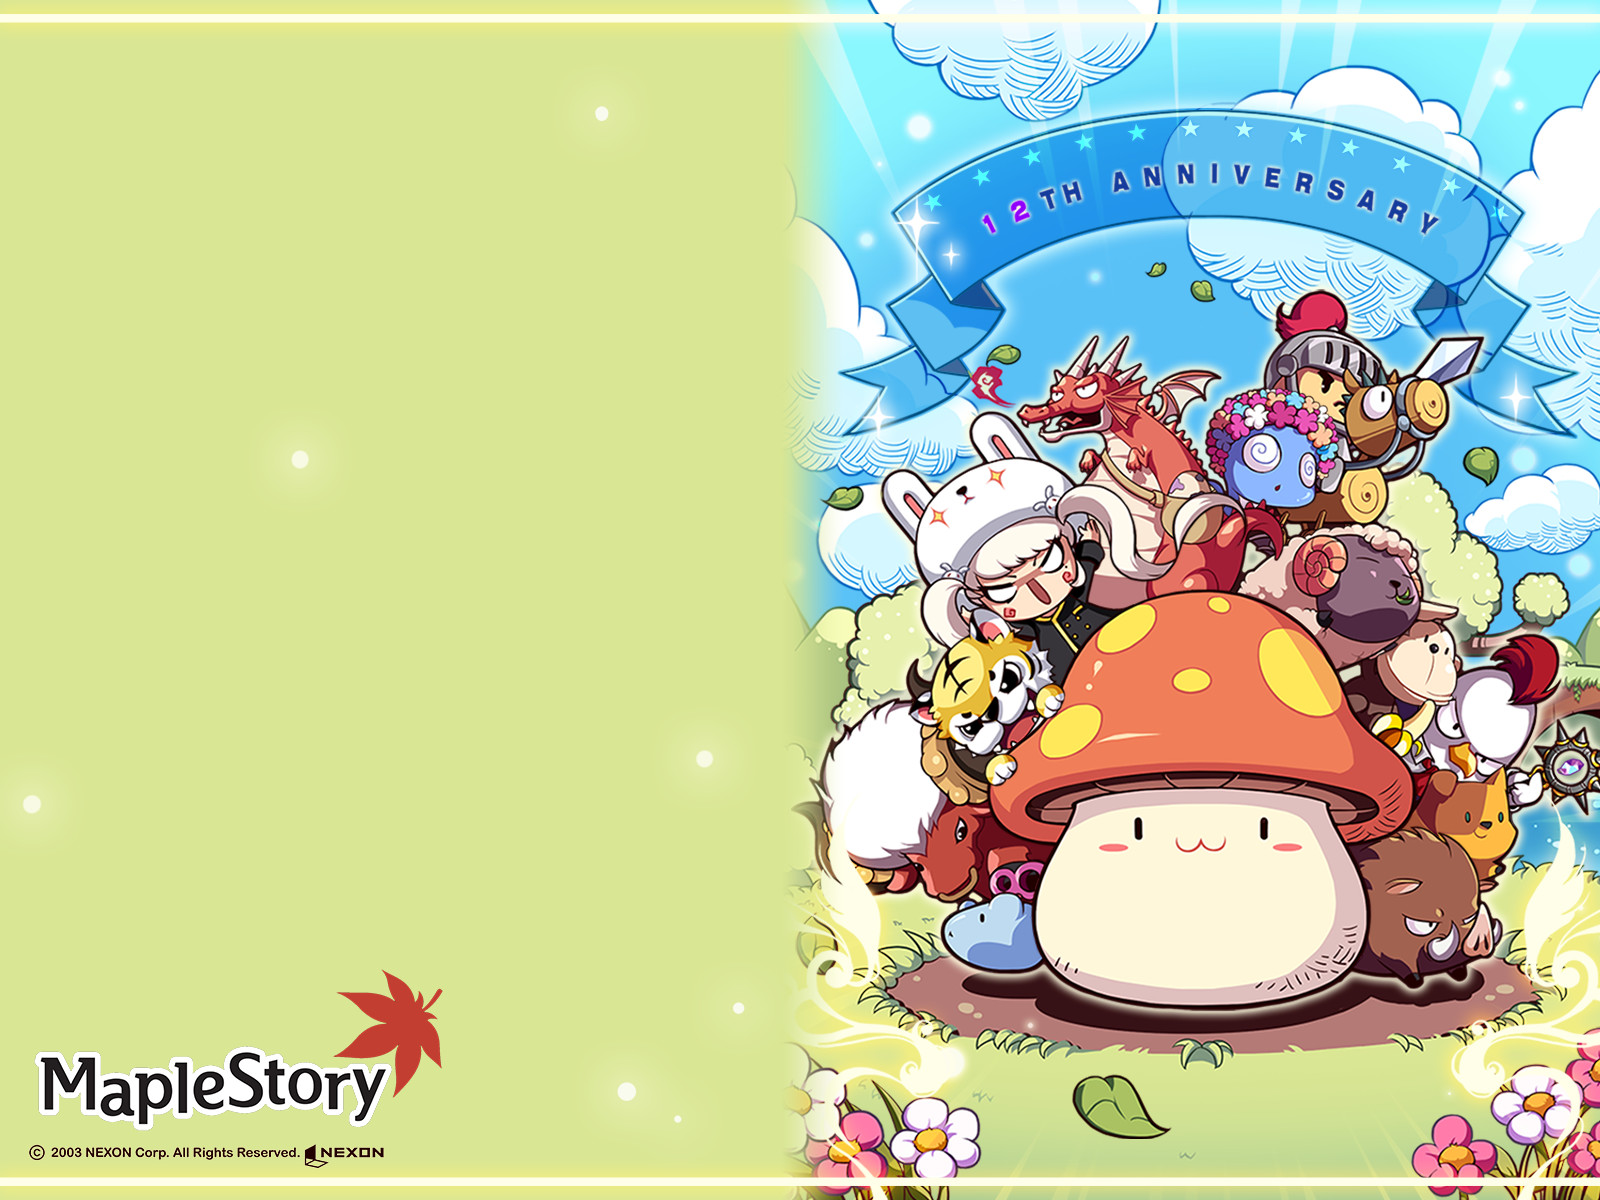 maplestory wallpaper for android